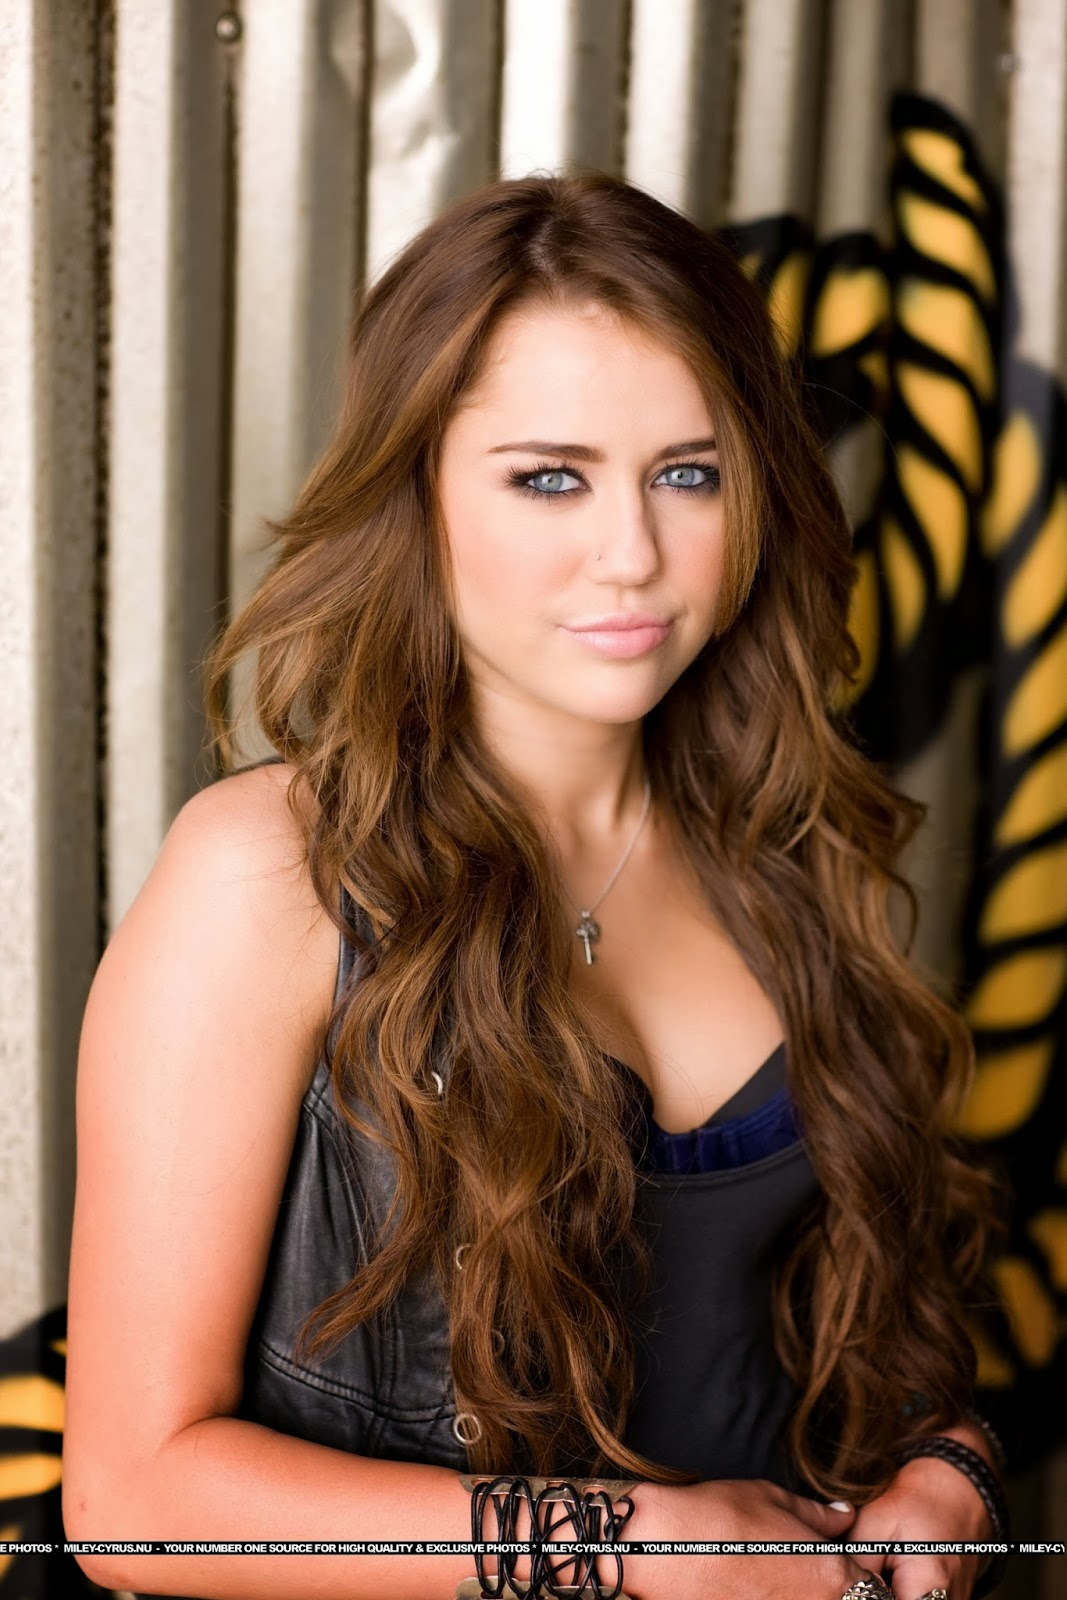 Miley Cyrus Early Career Music Zone